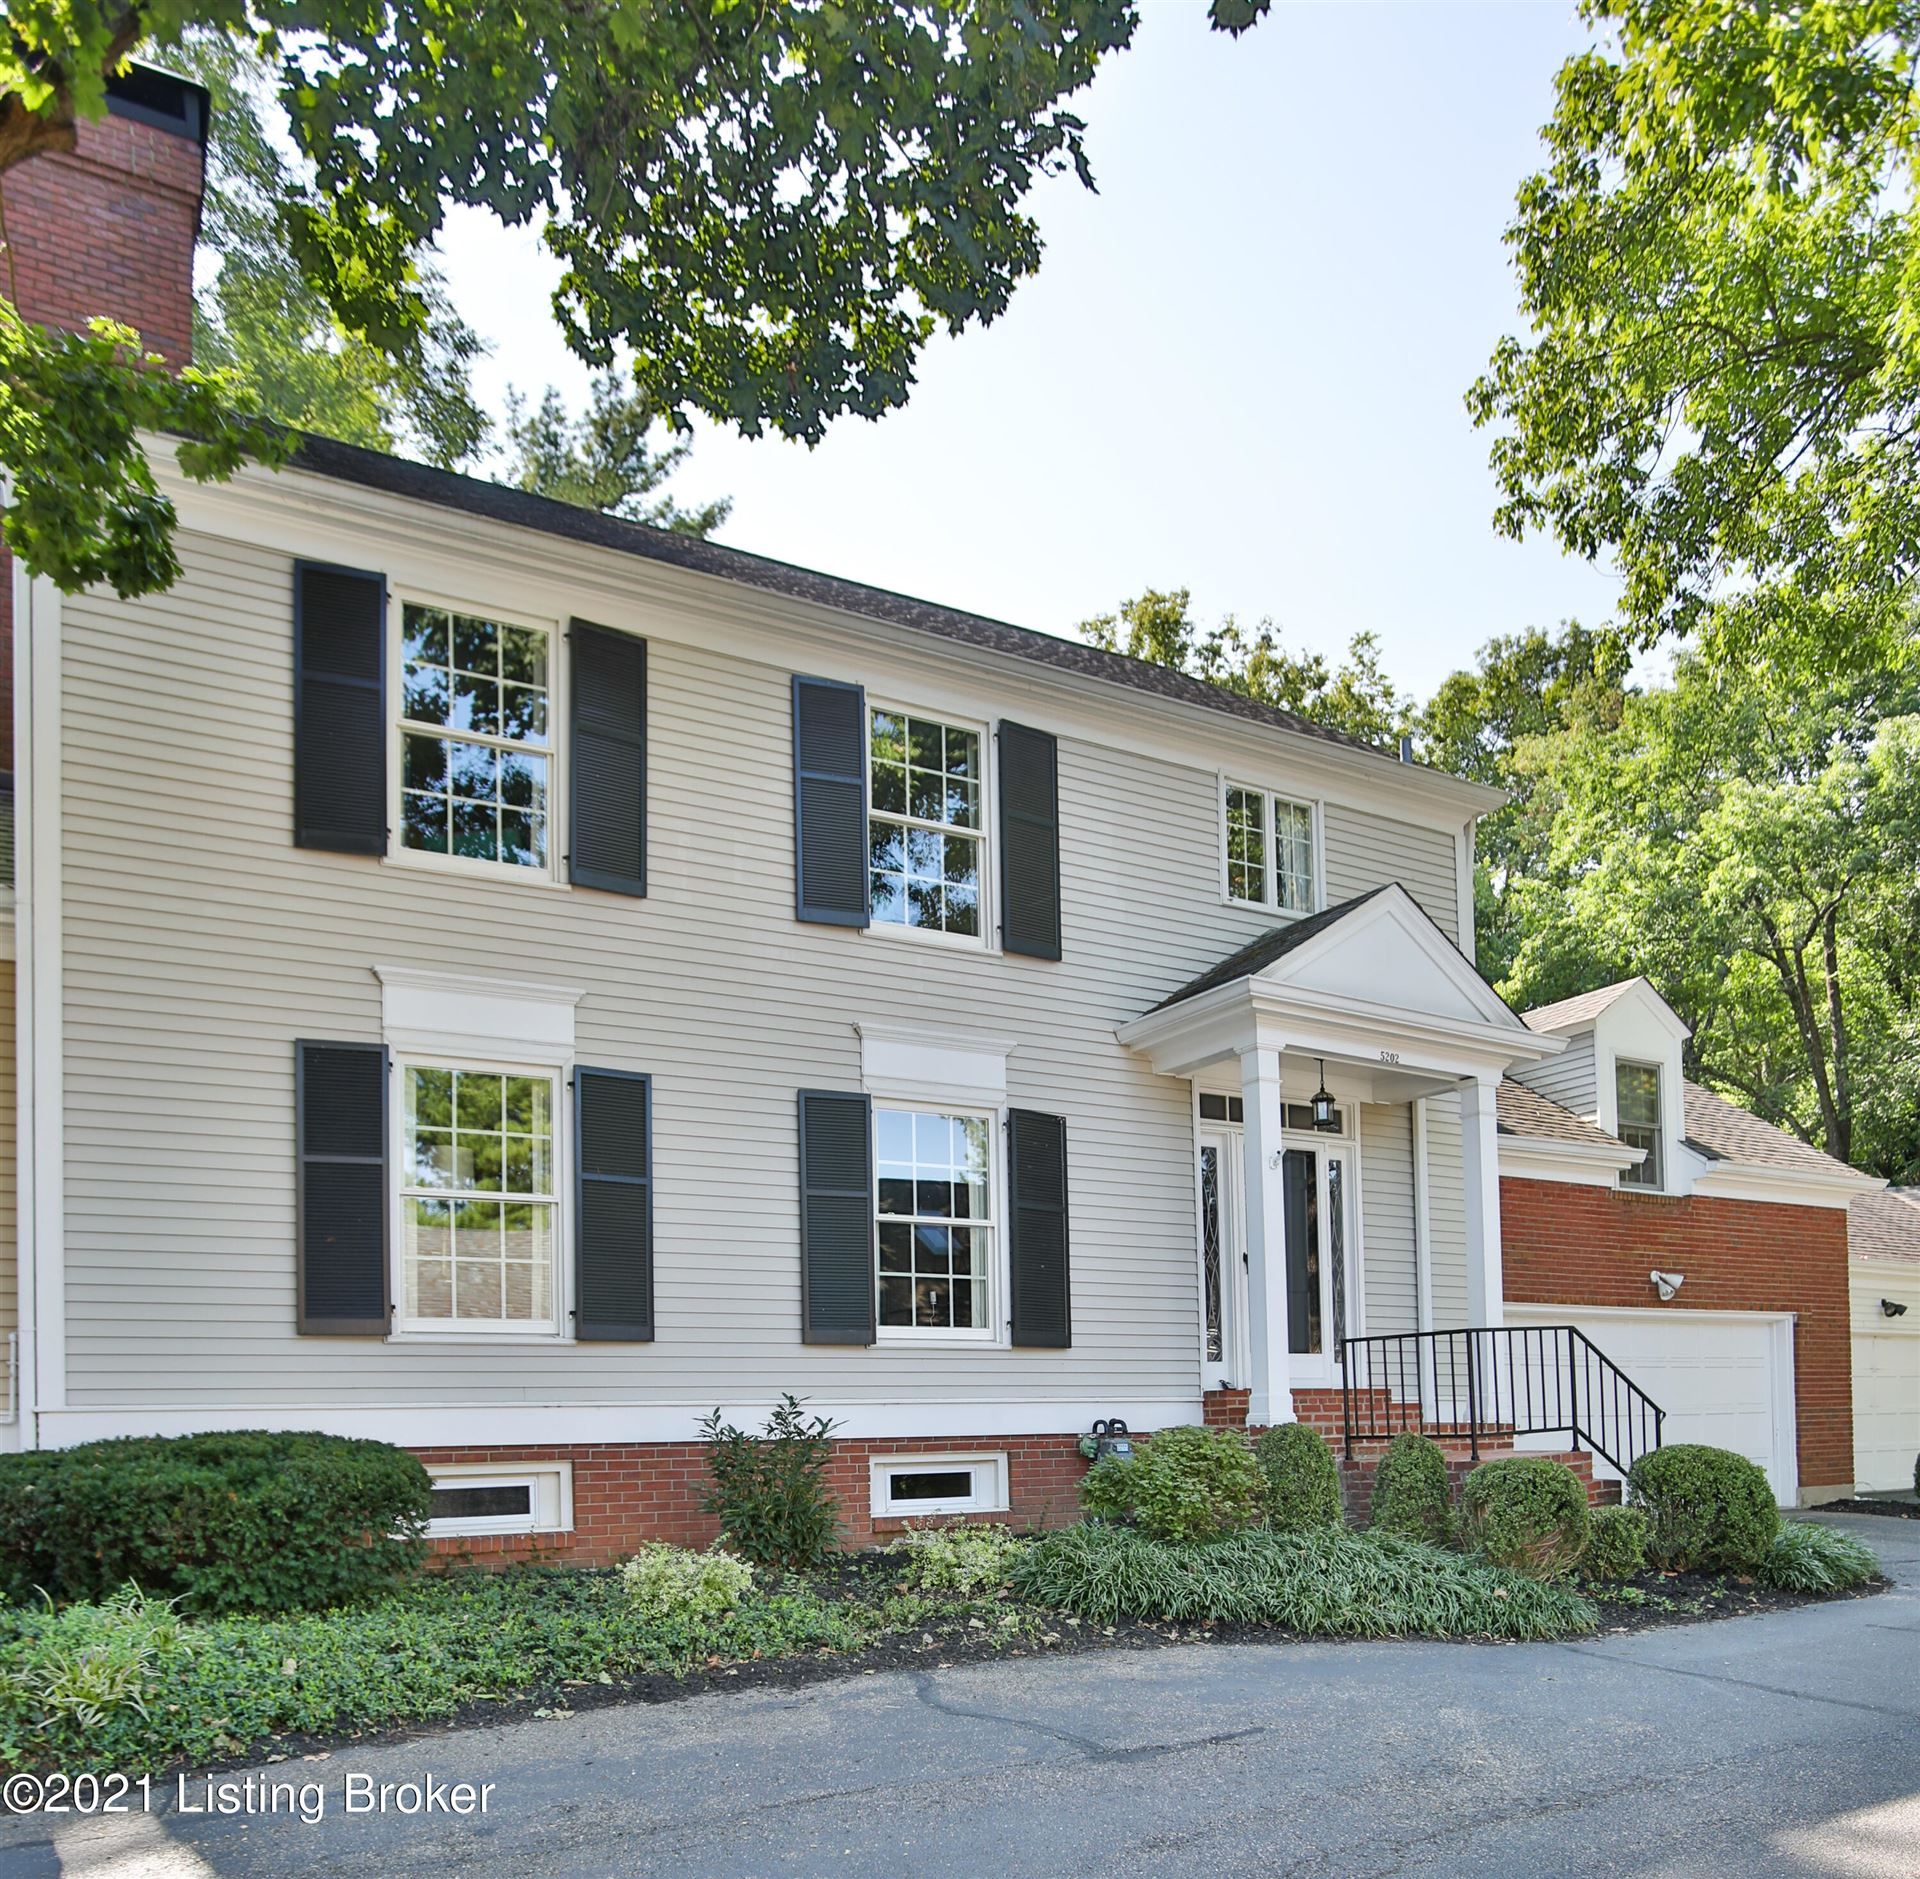 Photo for 5202 Indian Woods Ct, Louisville, KY 40207 (MLS # 1596265)